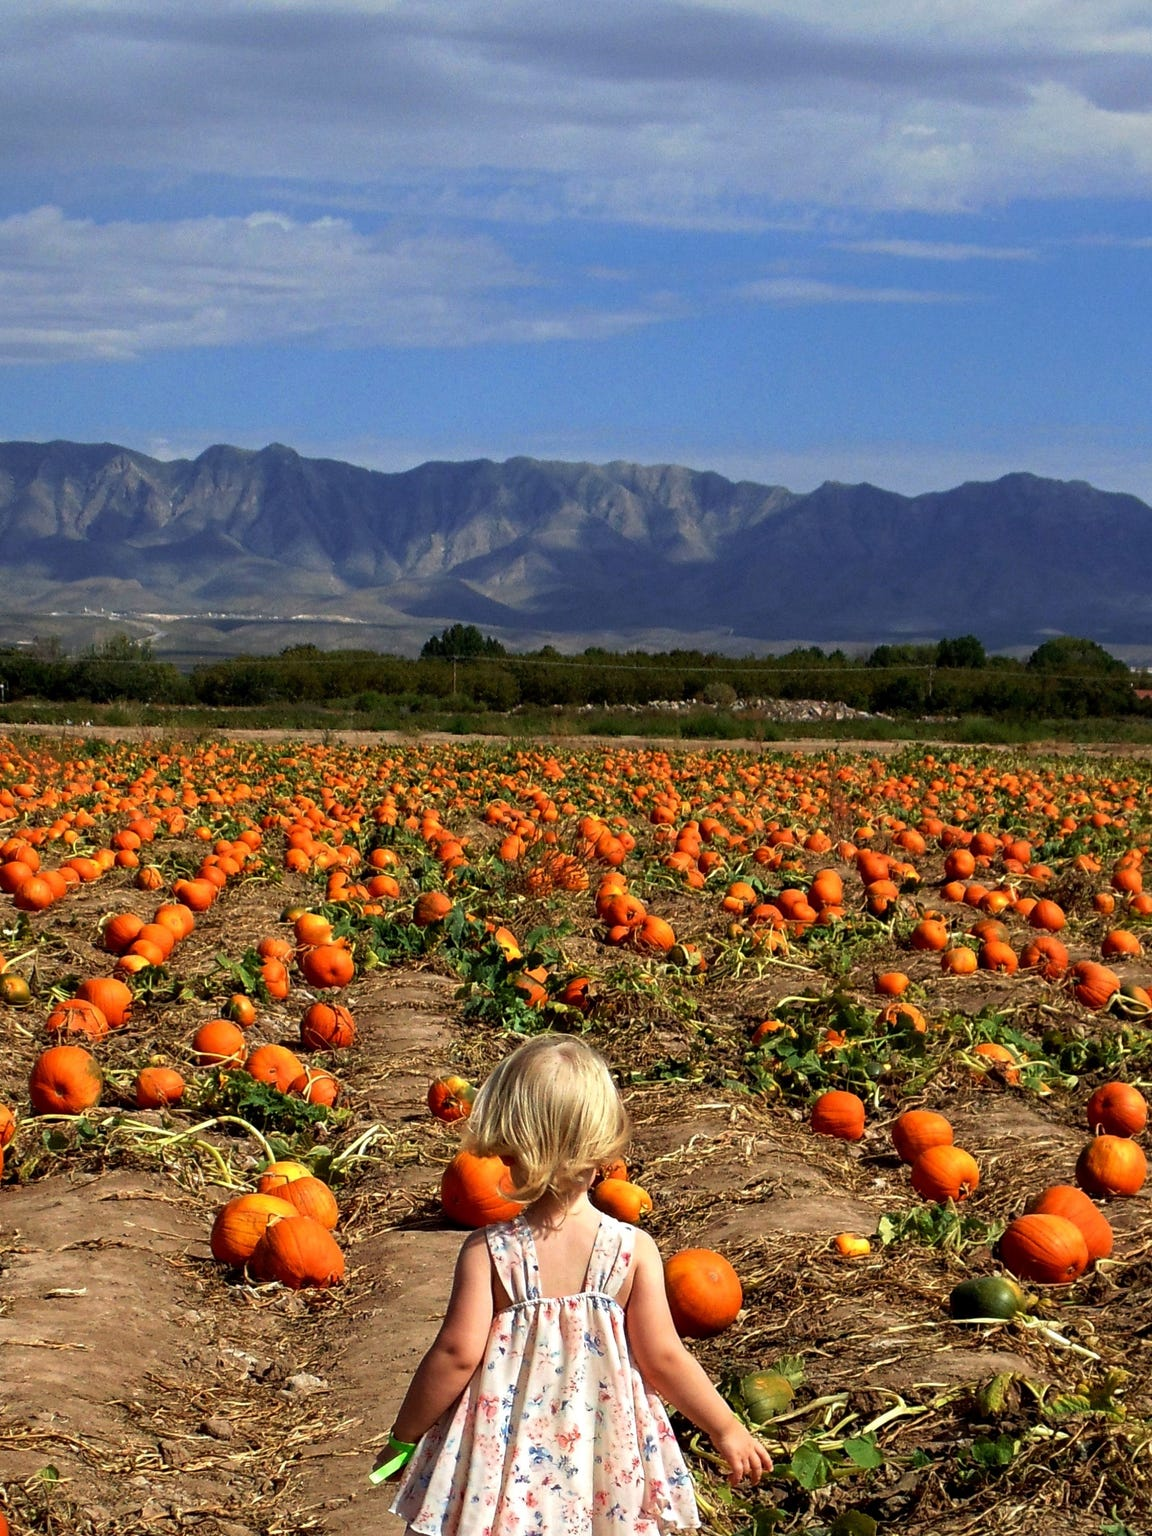 The 12-acre pumkin patch at La Union Maze.Small and larger pumpkins are available for purchase by the pound.